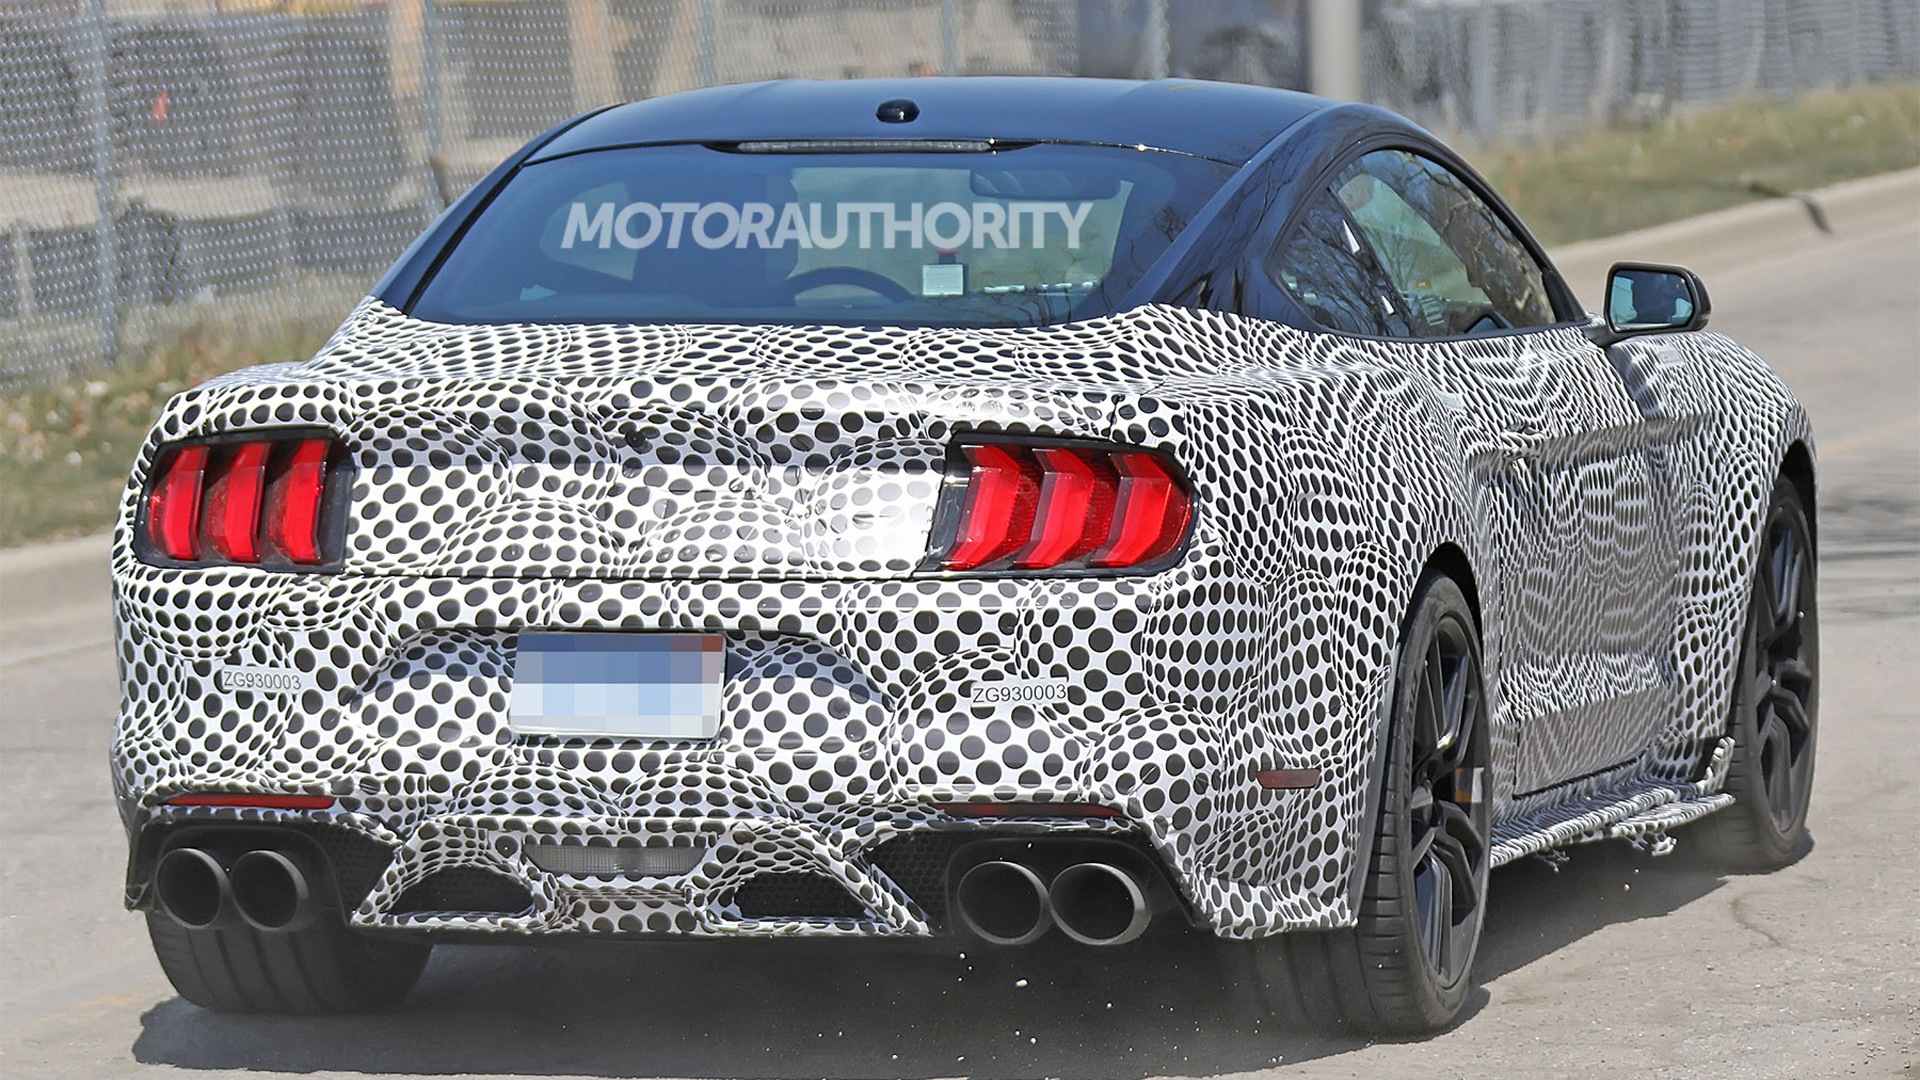 79 All New Spy Shots Ford Mustang Svt Gt 500 Research New